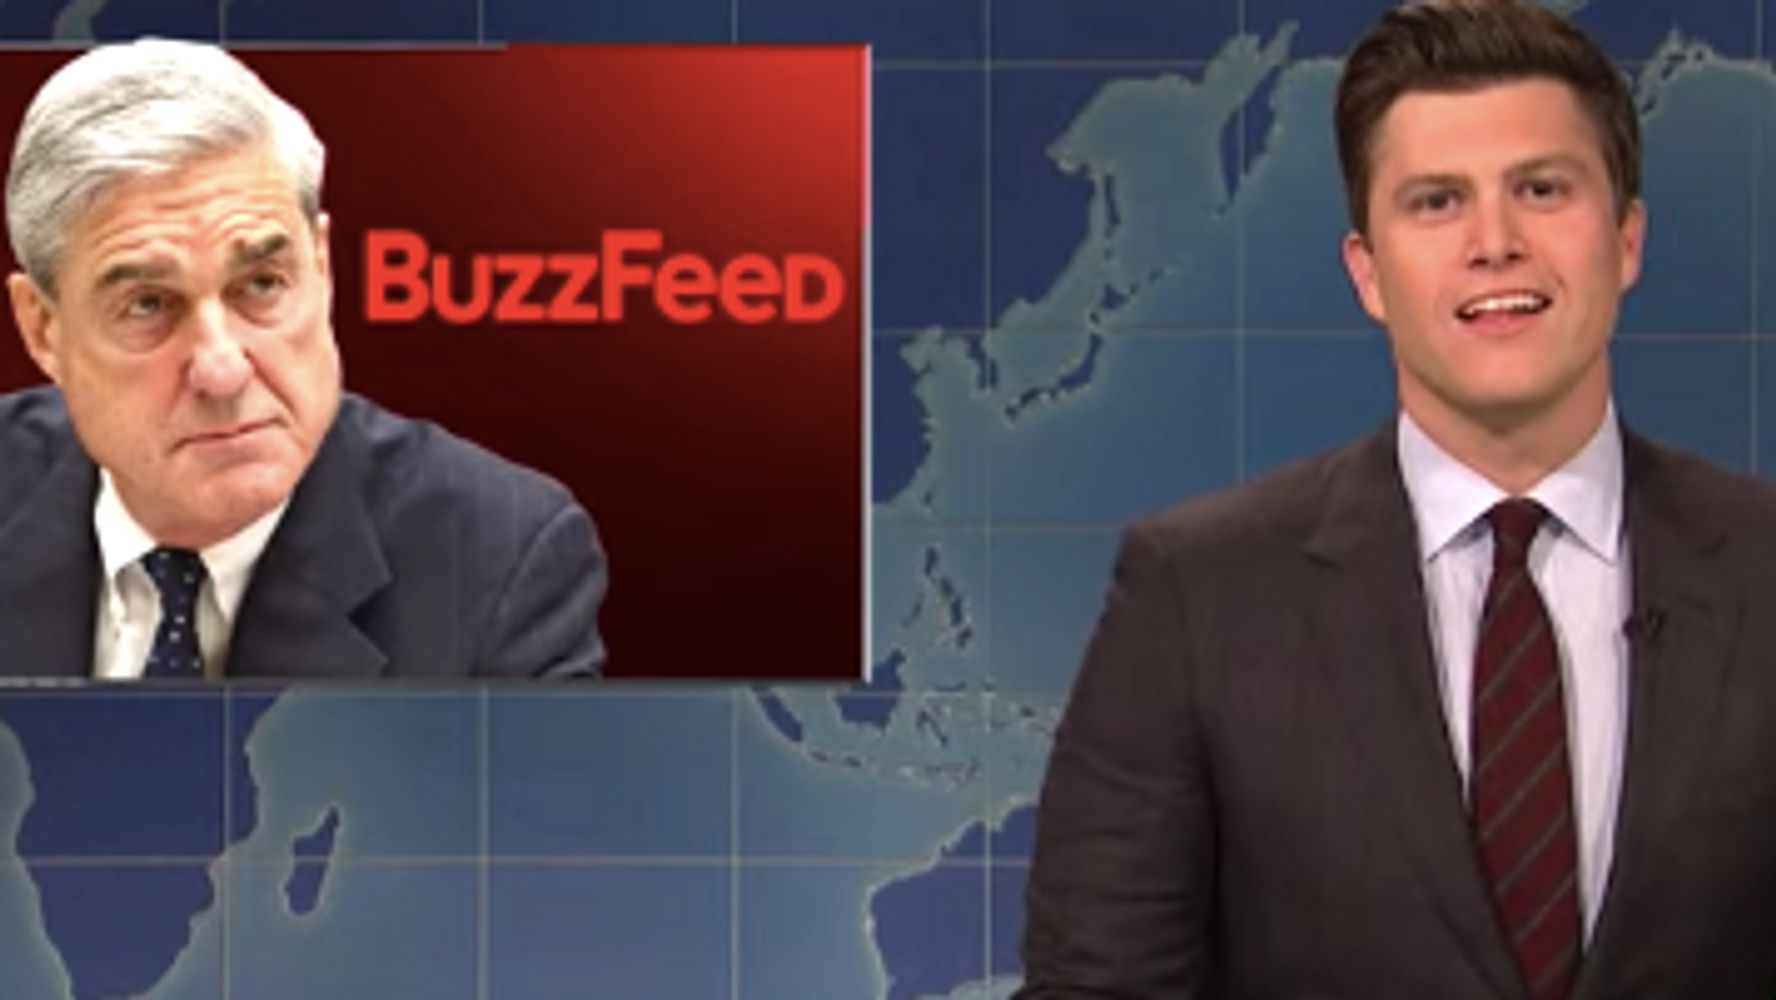 Weekend Update' Rips BuzzFeed In Scorching Attack Over 'Fake